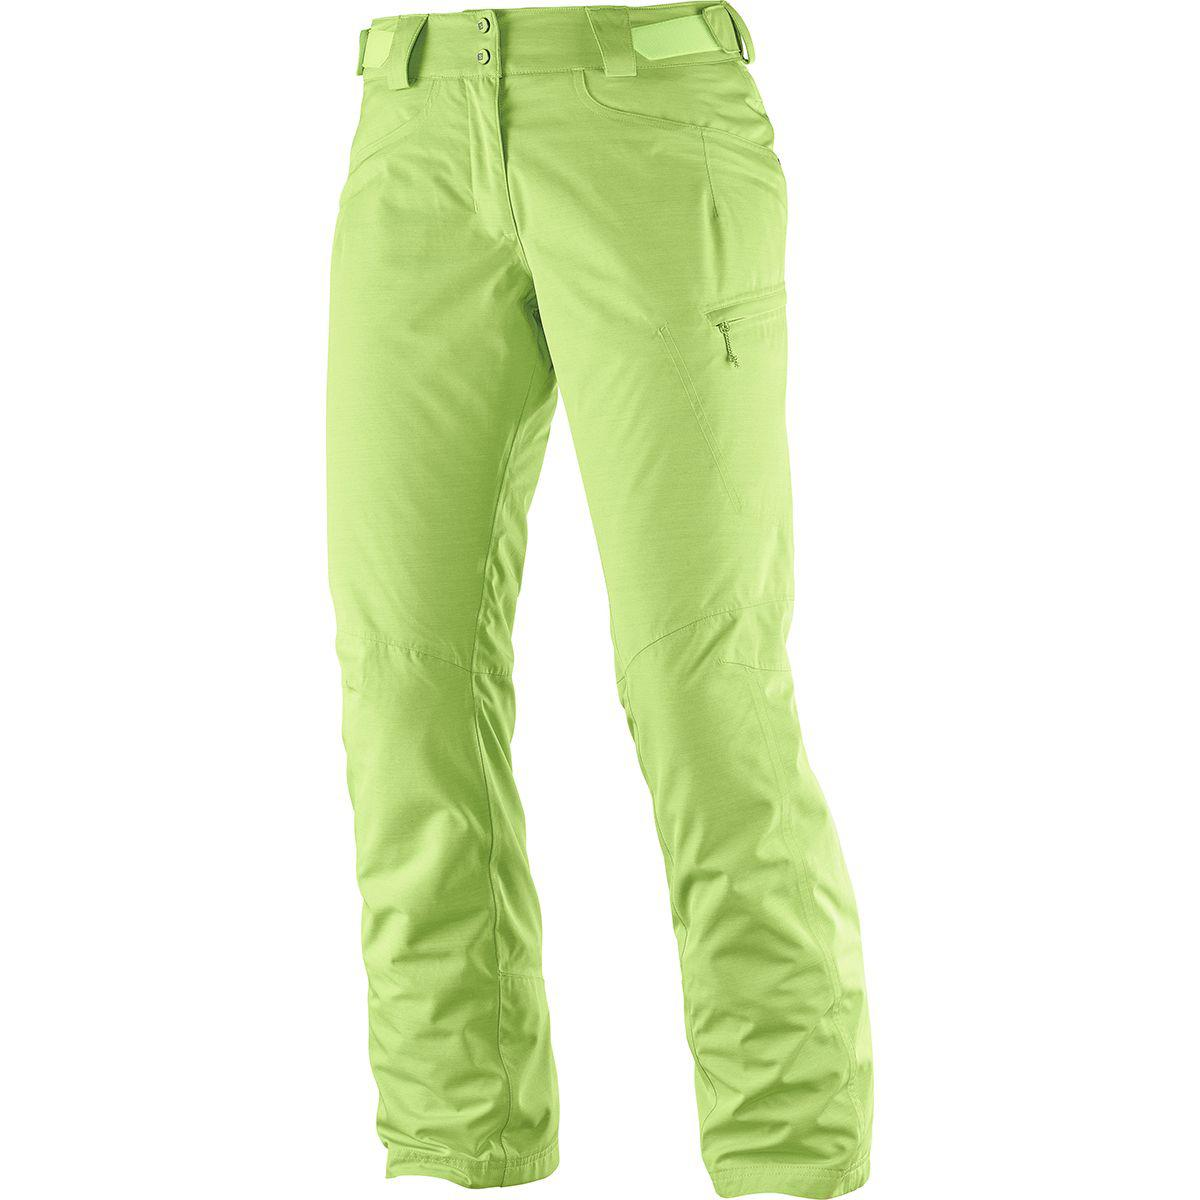 34ee9e6459 Lyst - Yves Salomon Fantasy Insulated Pant in Green